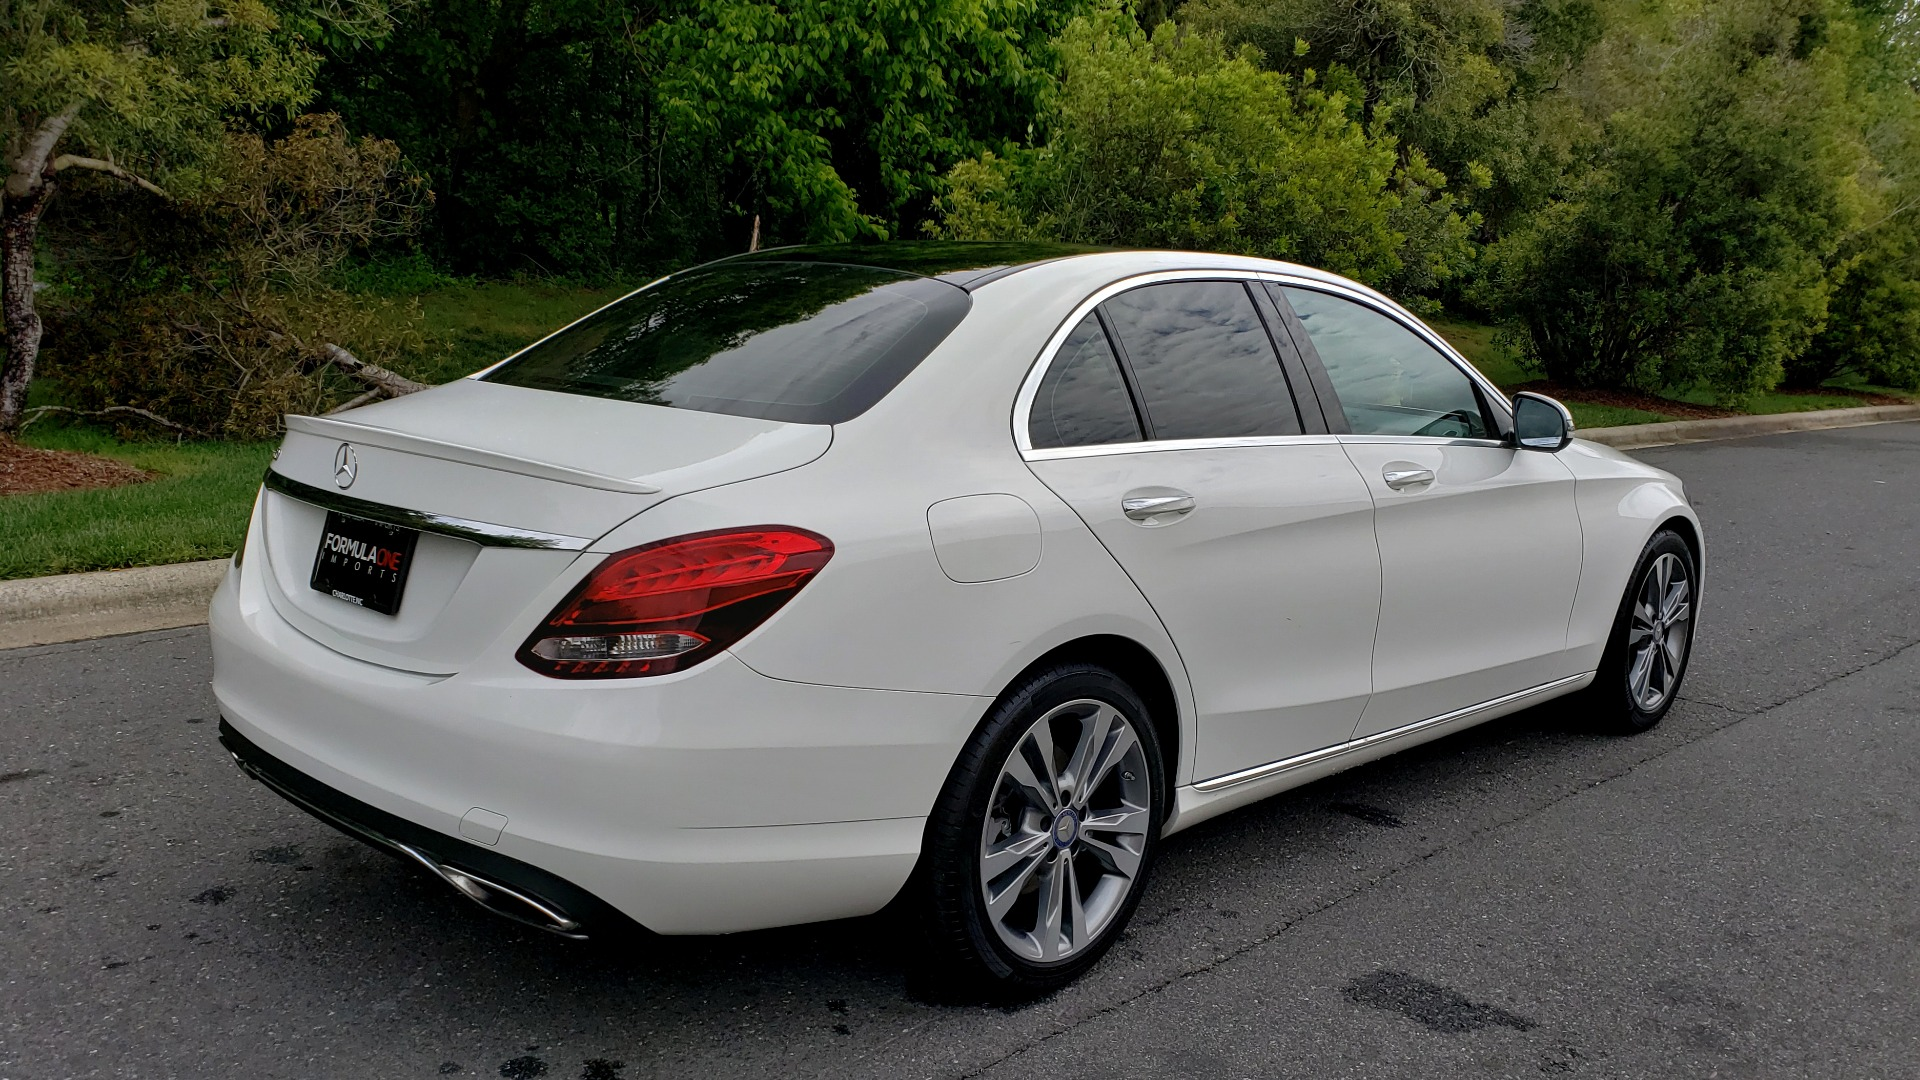 Used 2017 Mercedes-Benz C-Class C 300 PREMIUM / NAV / PANO-ROOF / HTD STS / REARVIEW for sale Sold at Formula Imports in Charlotte NC 28227 6